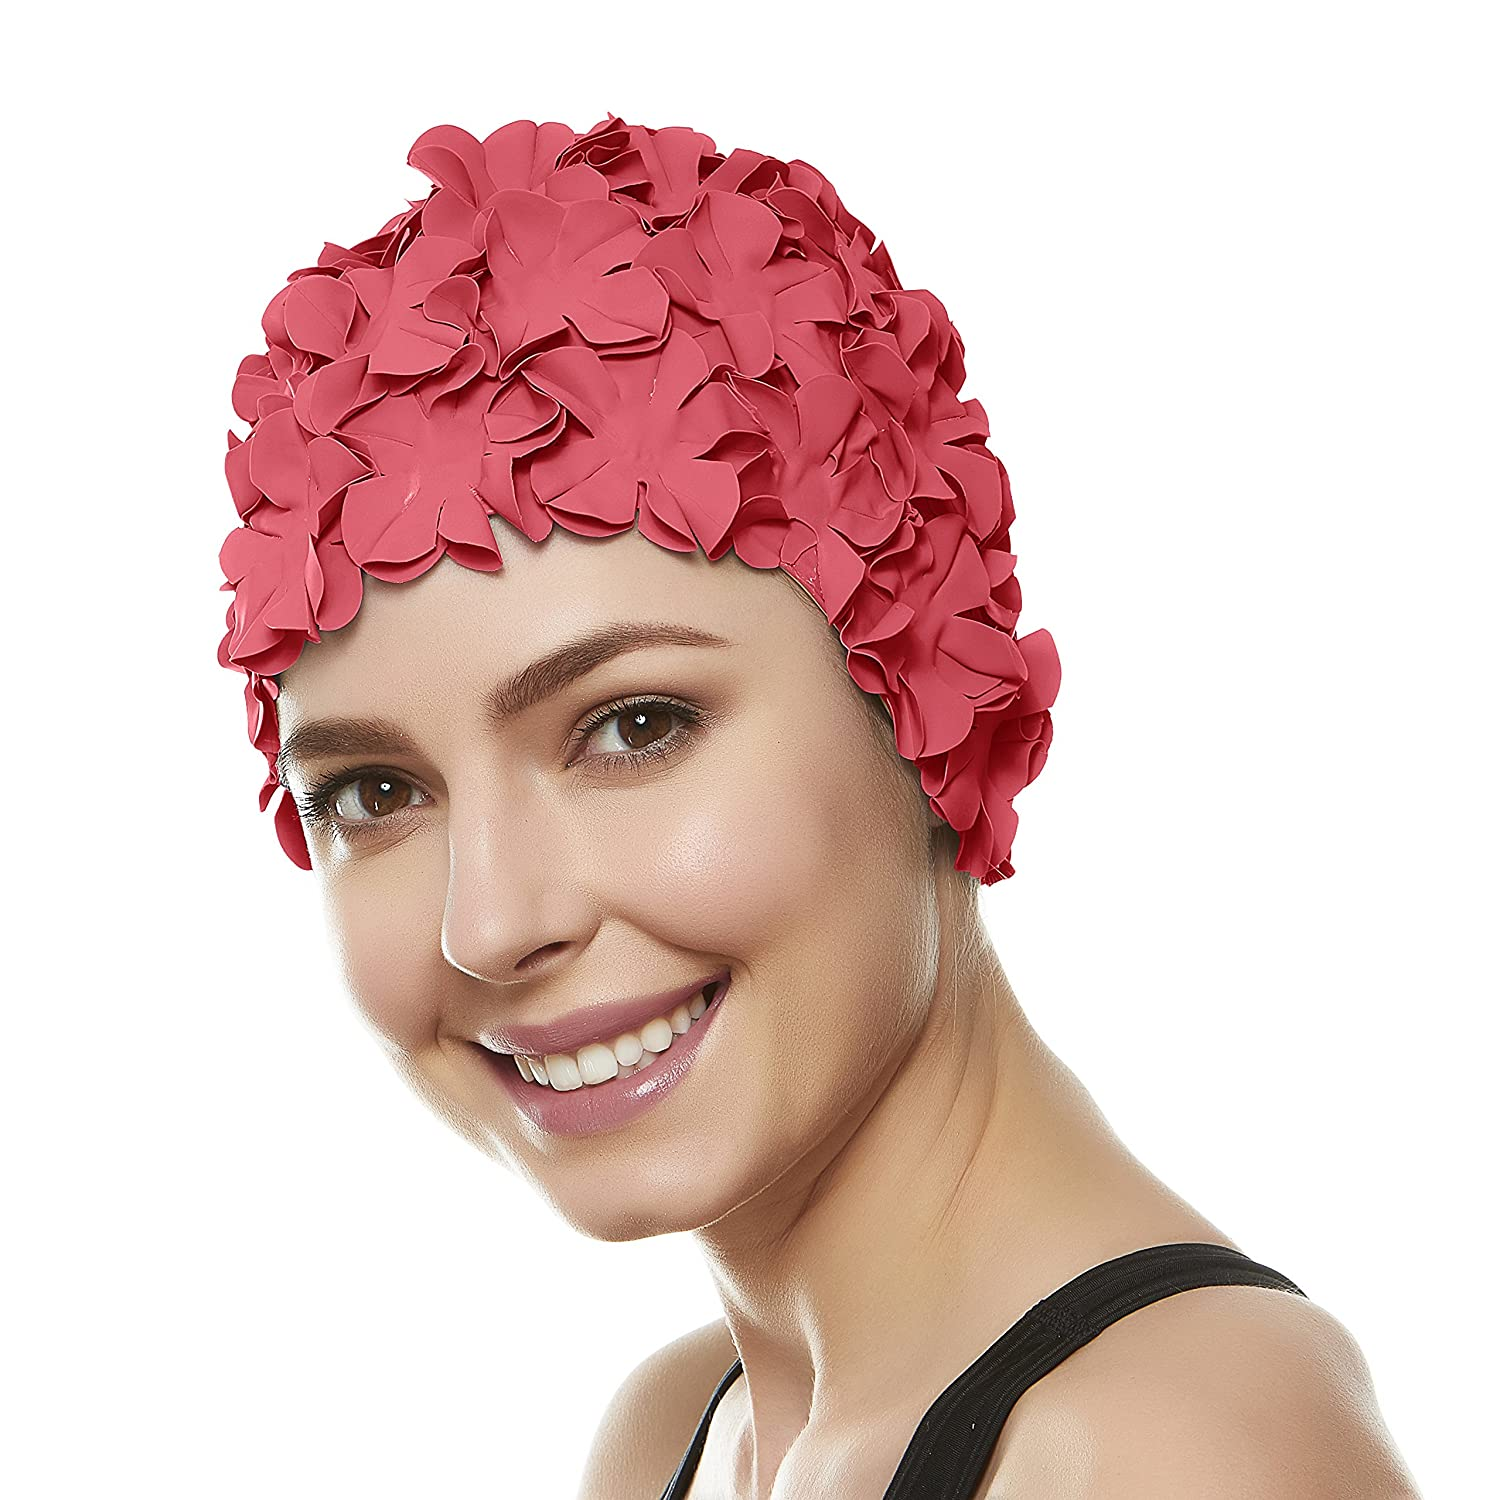 47b56ee086f Amazon.com   Beemo Floral Petal Swim Cap for Women â Retro Style Vintage  Bathing Cap Swimming Hat for Long and Short Hair - Coral Pink   Sports    Outdoors